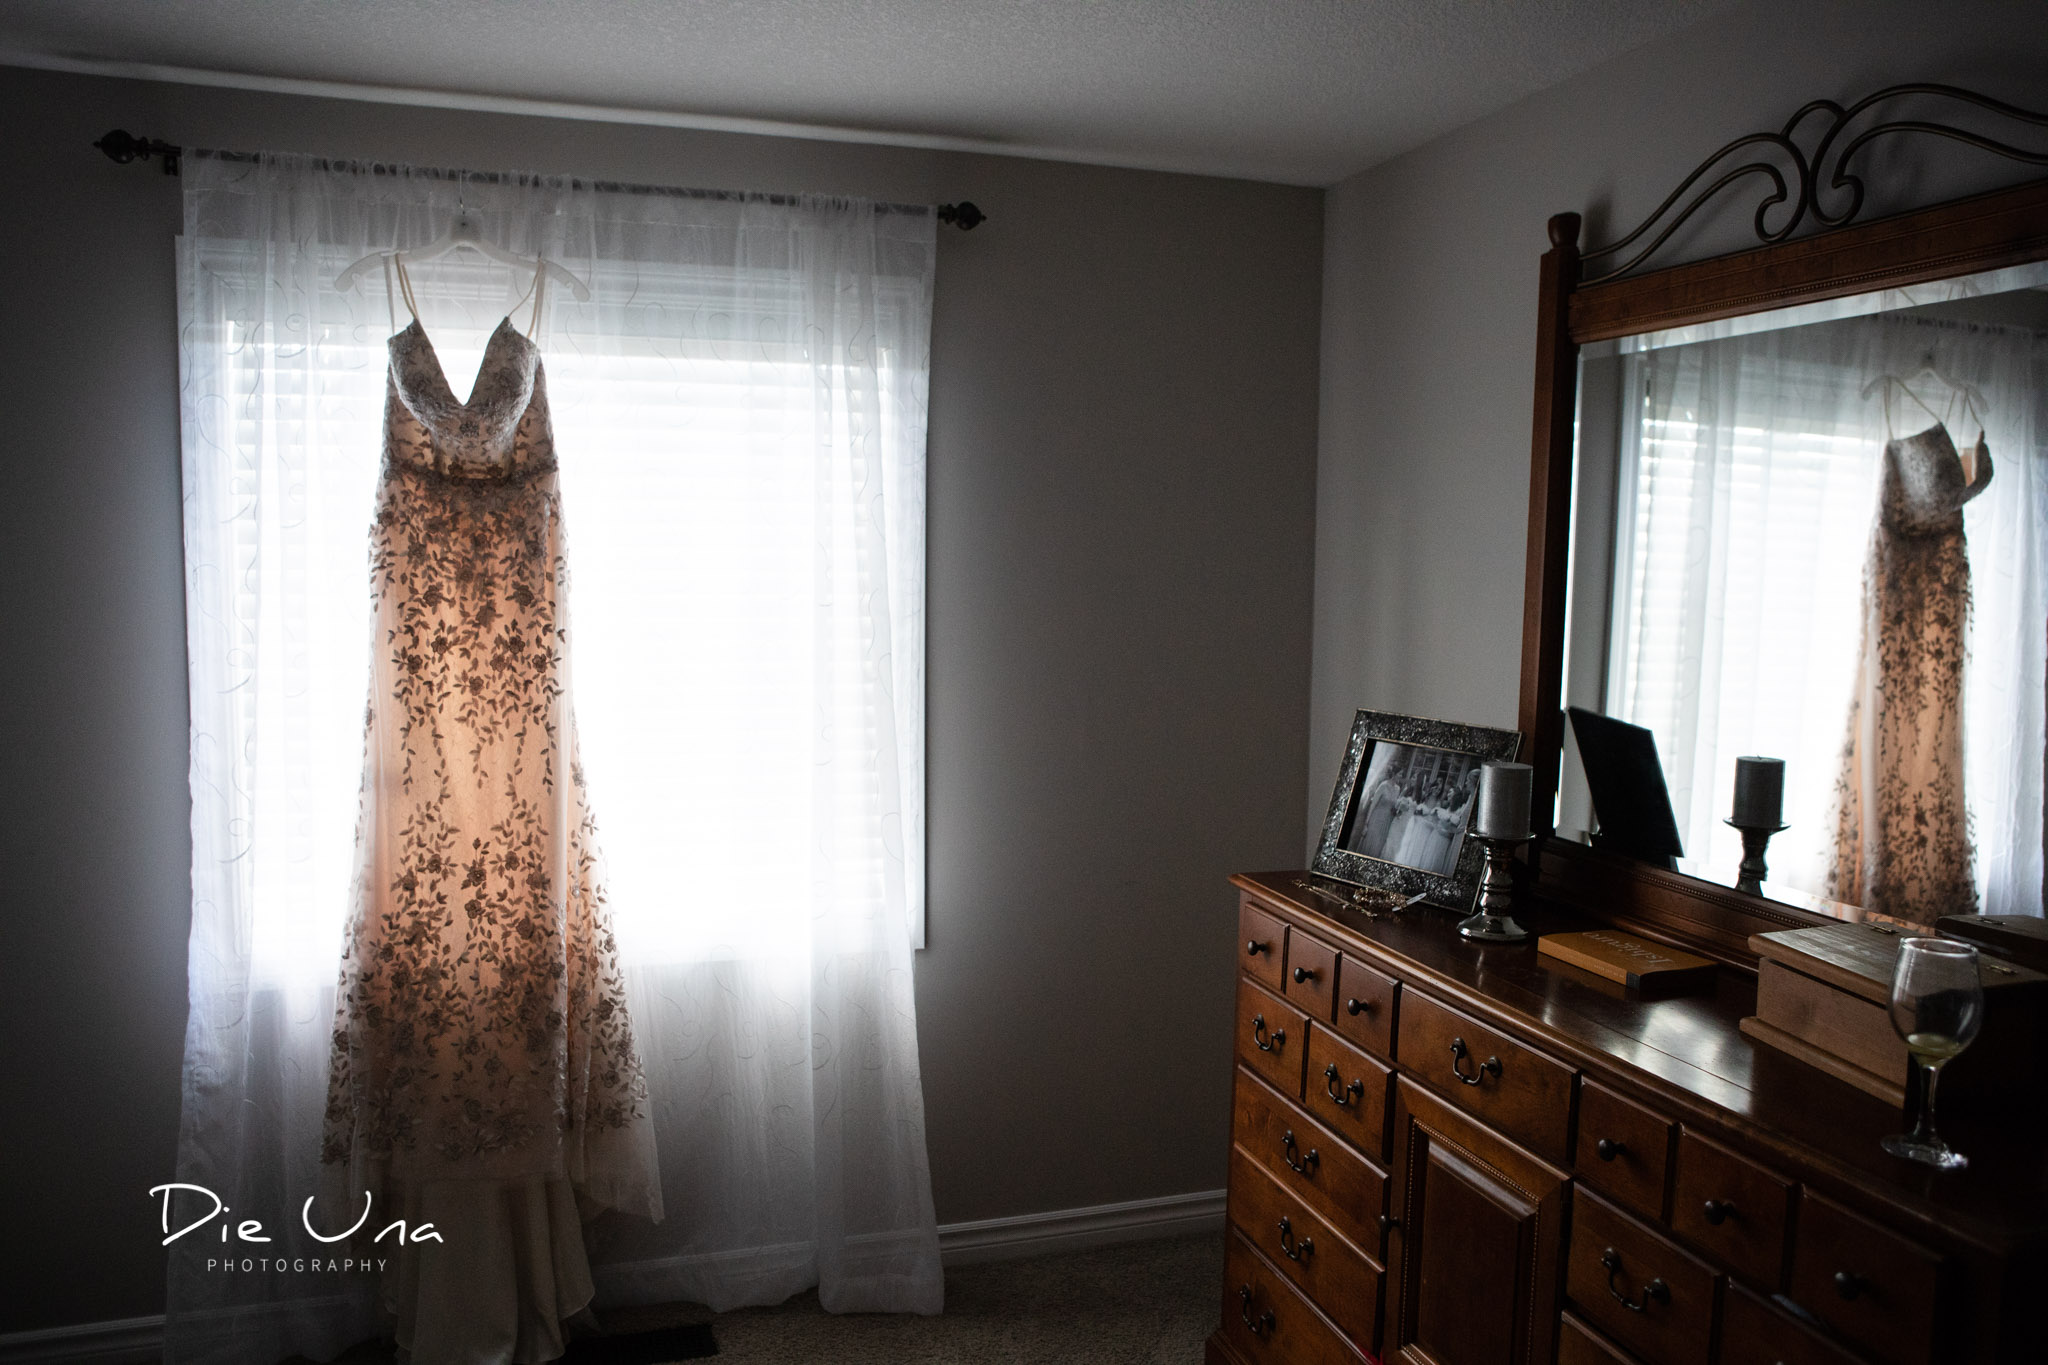 wedding dress hanging in window and reflected in dresser mirror.jpg